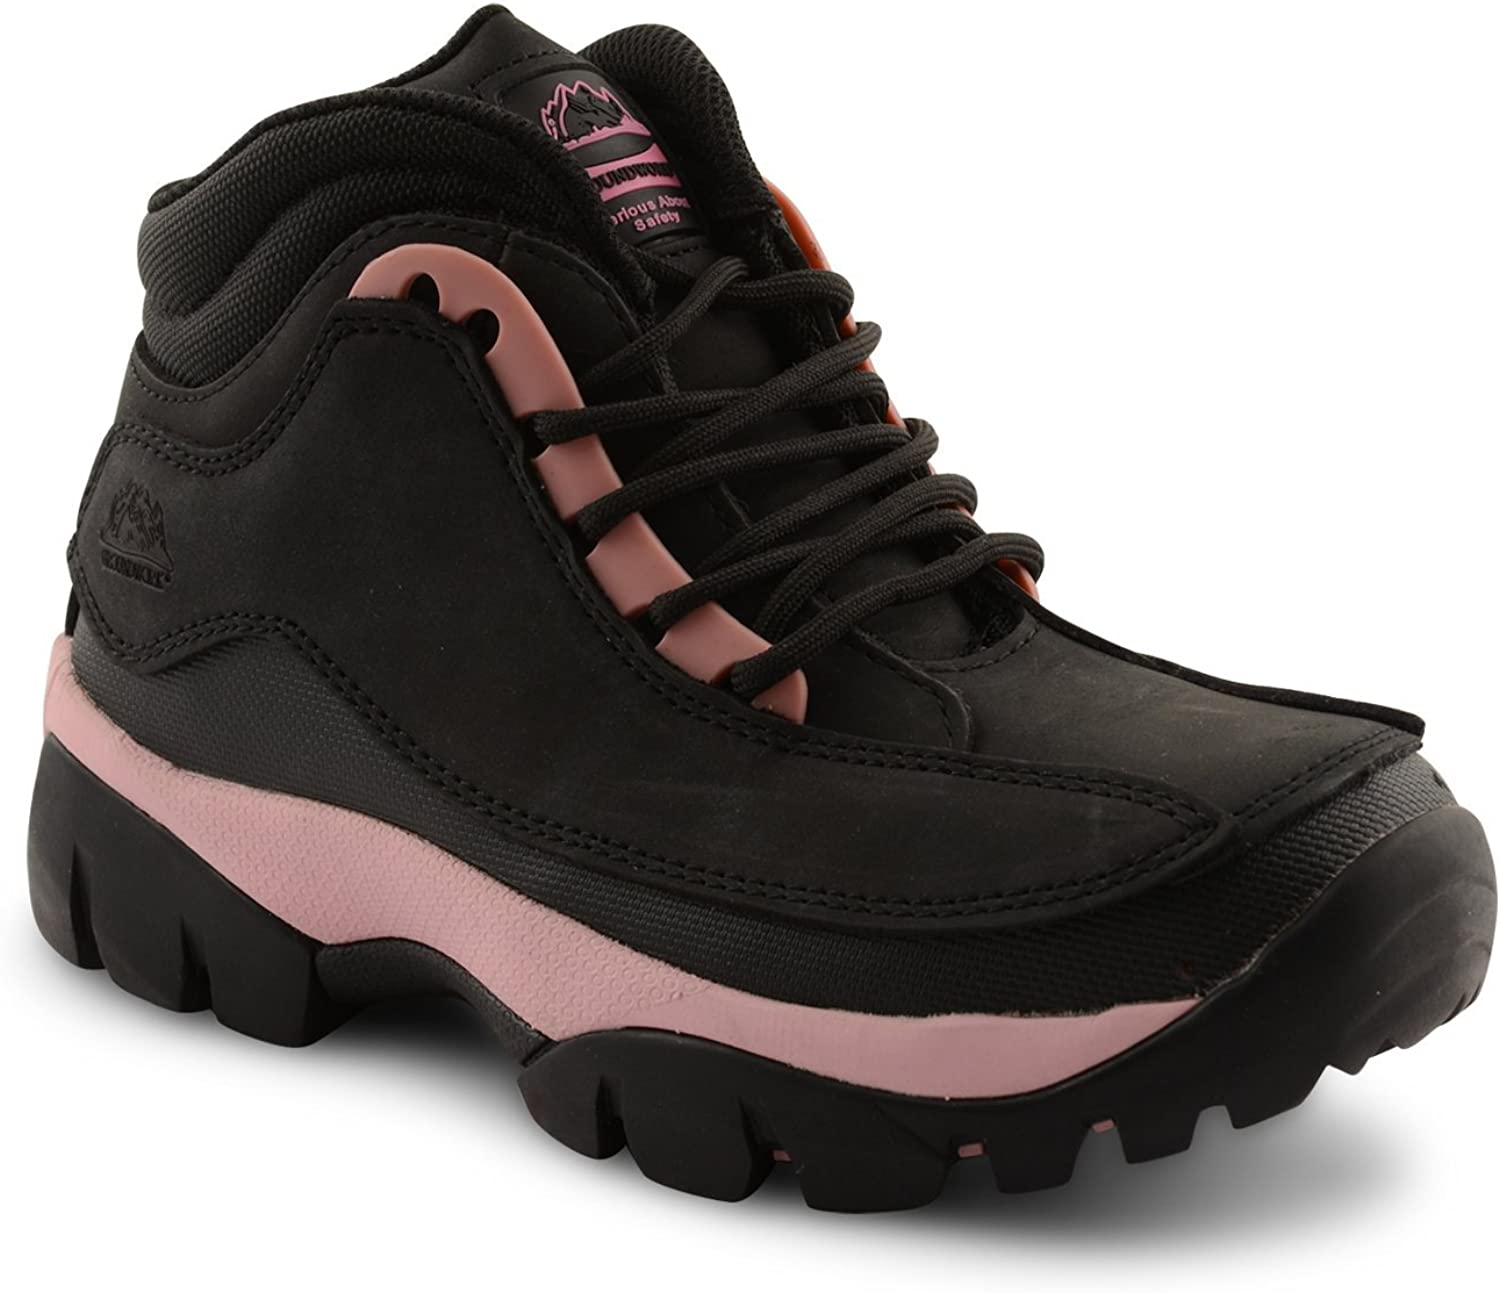 LADIES LIGHT-WEIGHT STEEL TOE CAP TRAINERS SAFETY WOMENS LACE UP WORK SHOE BOOTS